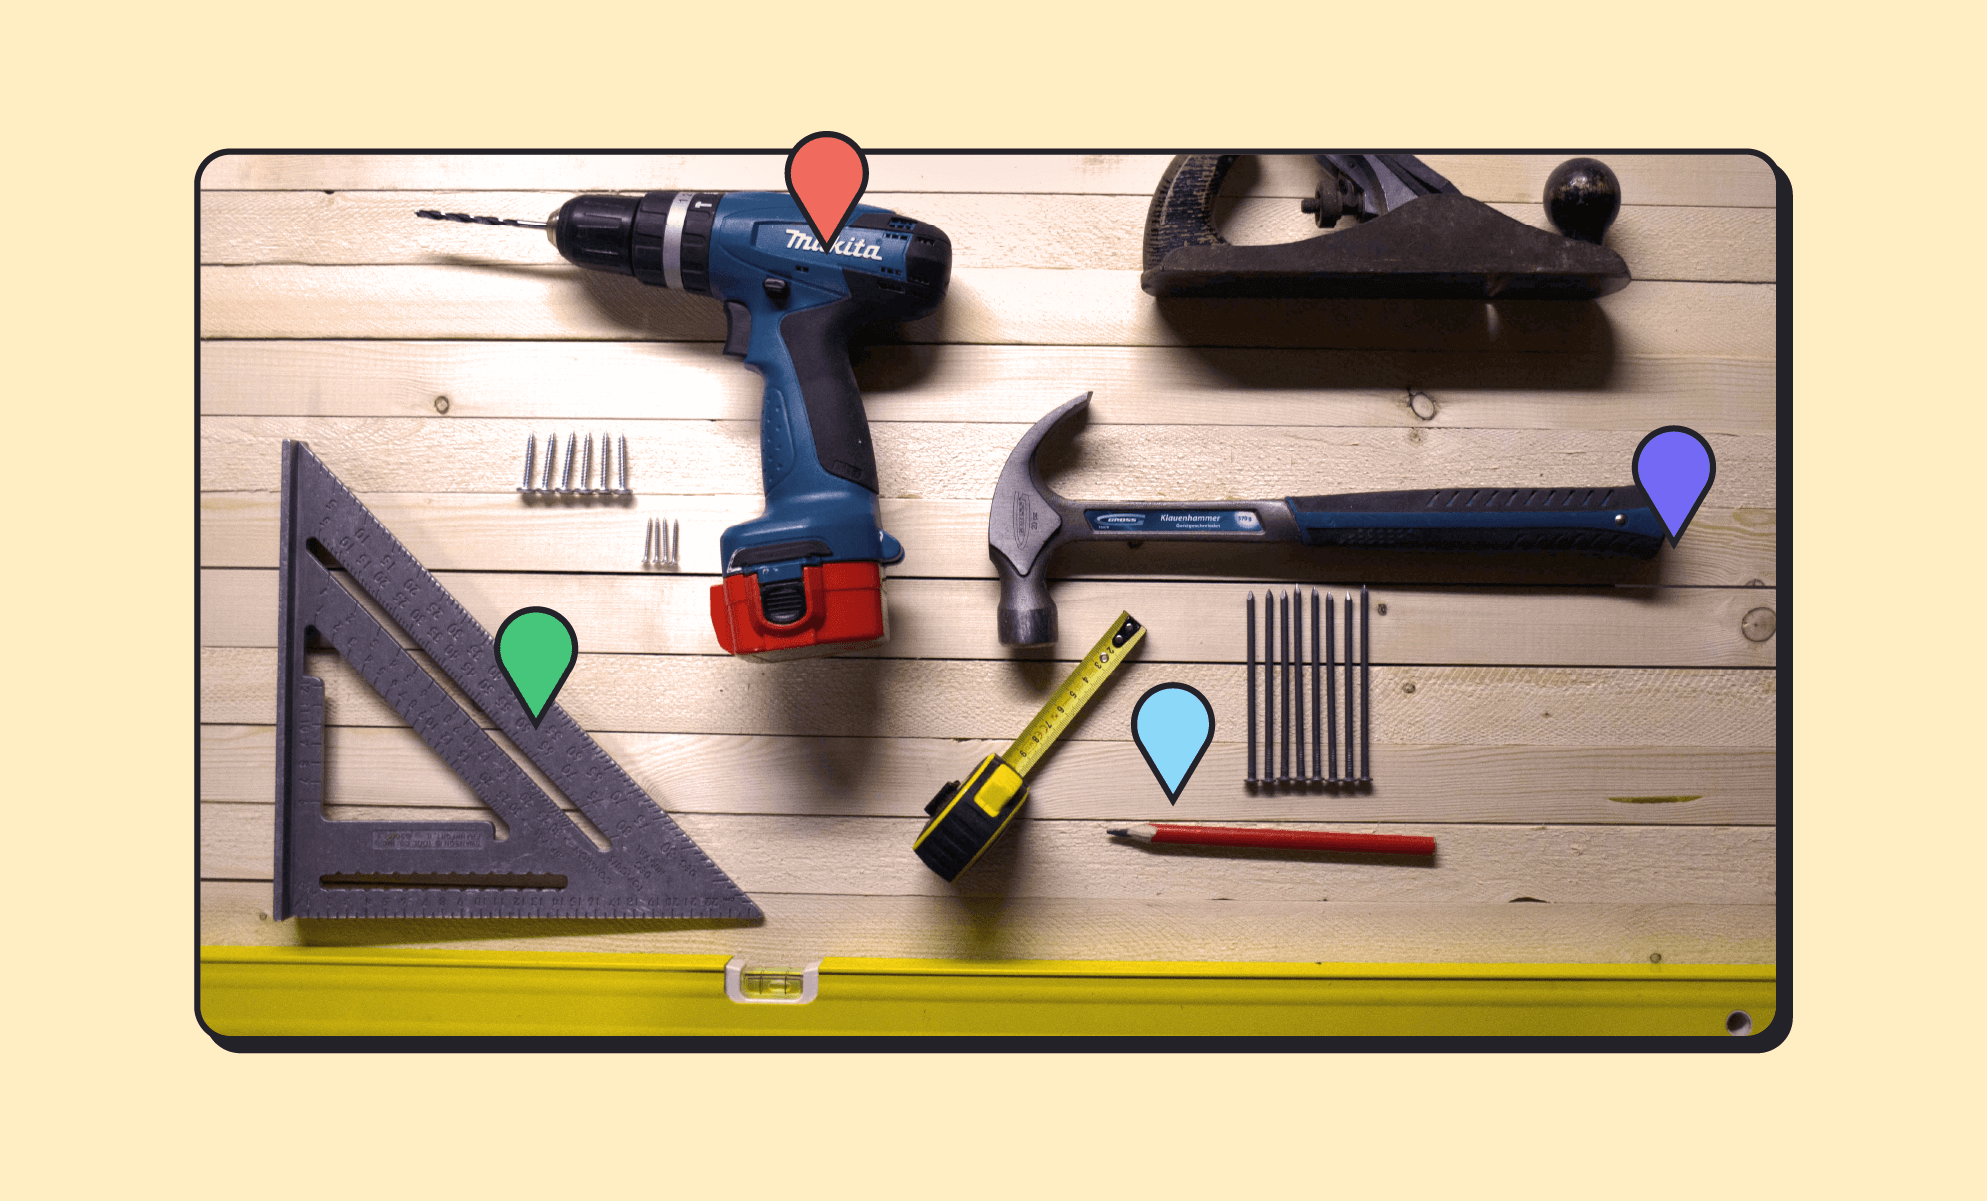 Construction and power tools on a wood table, including a Mikita drill, ruler, planer, hammer, tape measure, pencil, and drill bits. (BrainStorm, Inc. - Oct. 2021)